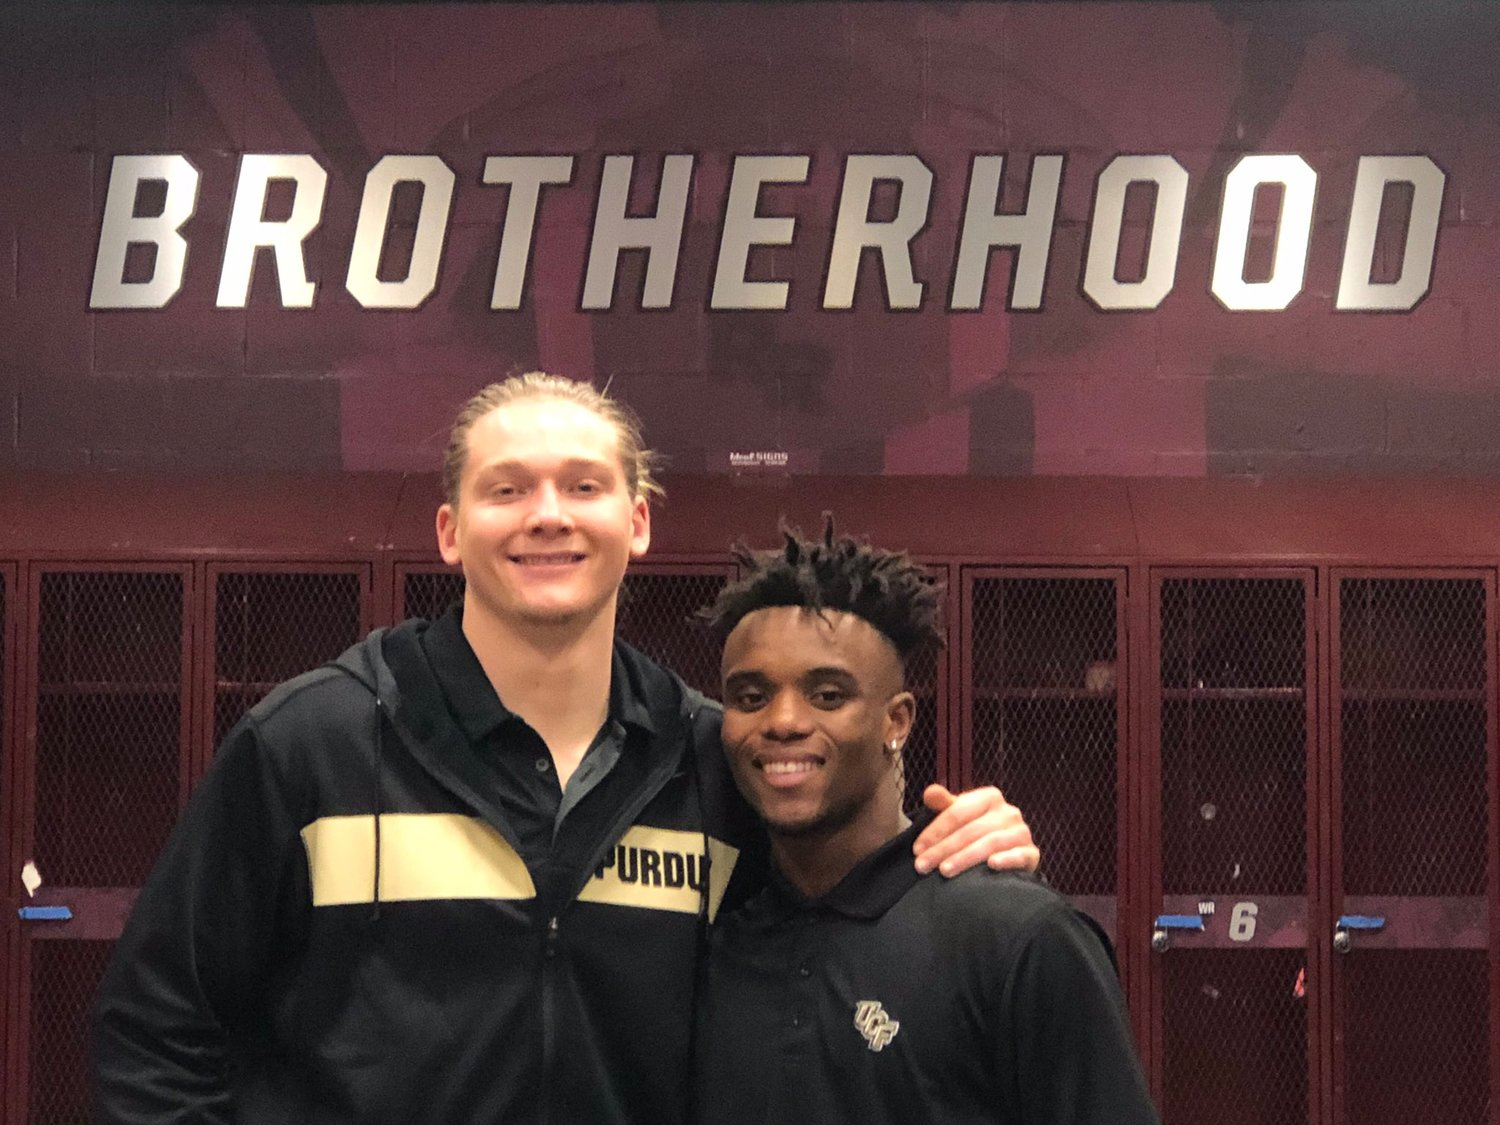 Round Rock tight end Garrett Miller, left, signed a letter of intent to play football at Purdue. Ryan O'Keefe, right, was named the District 13-6A and will play football at Central Florida next season.